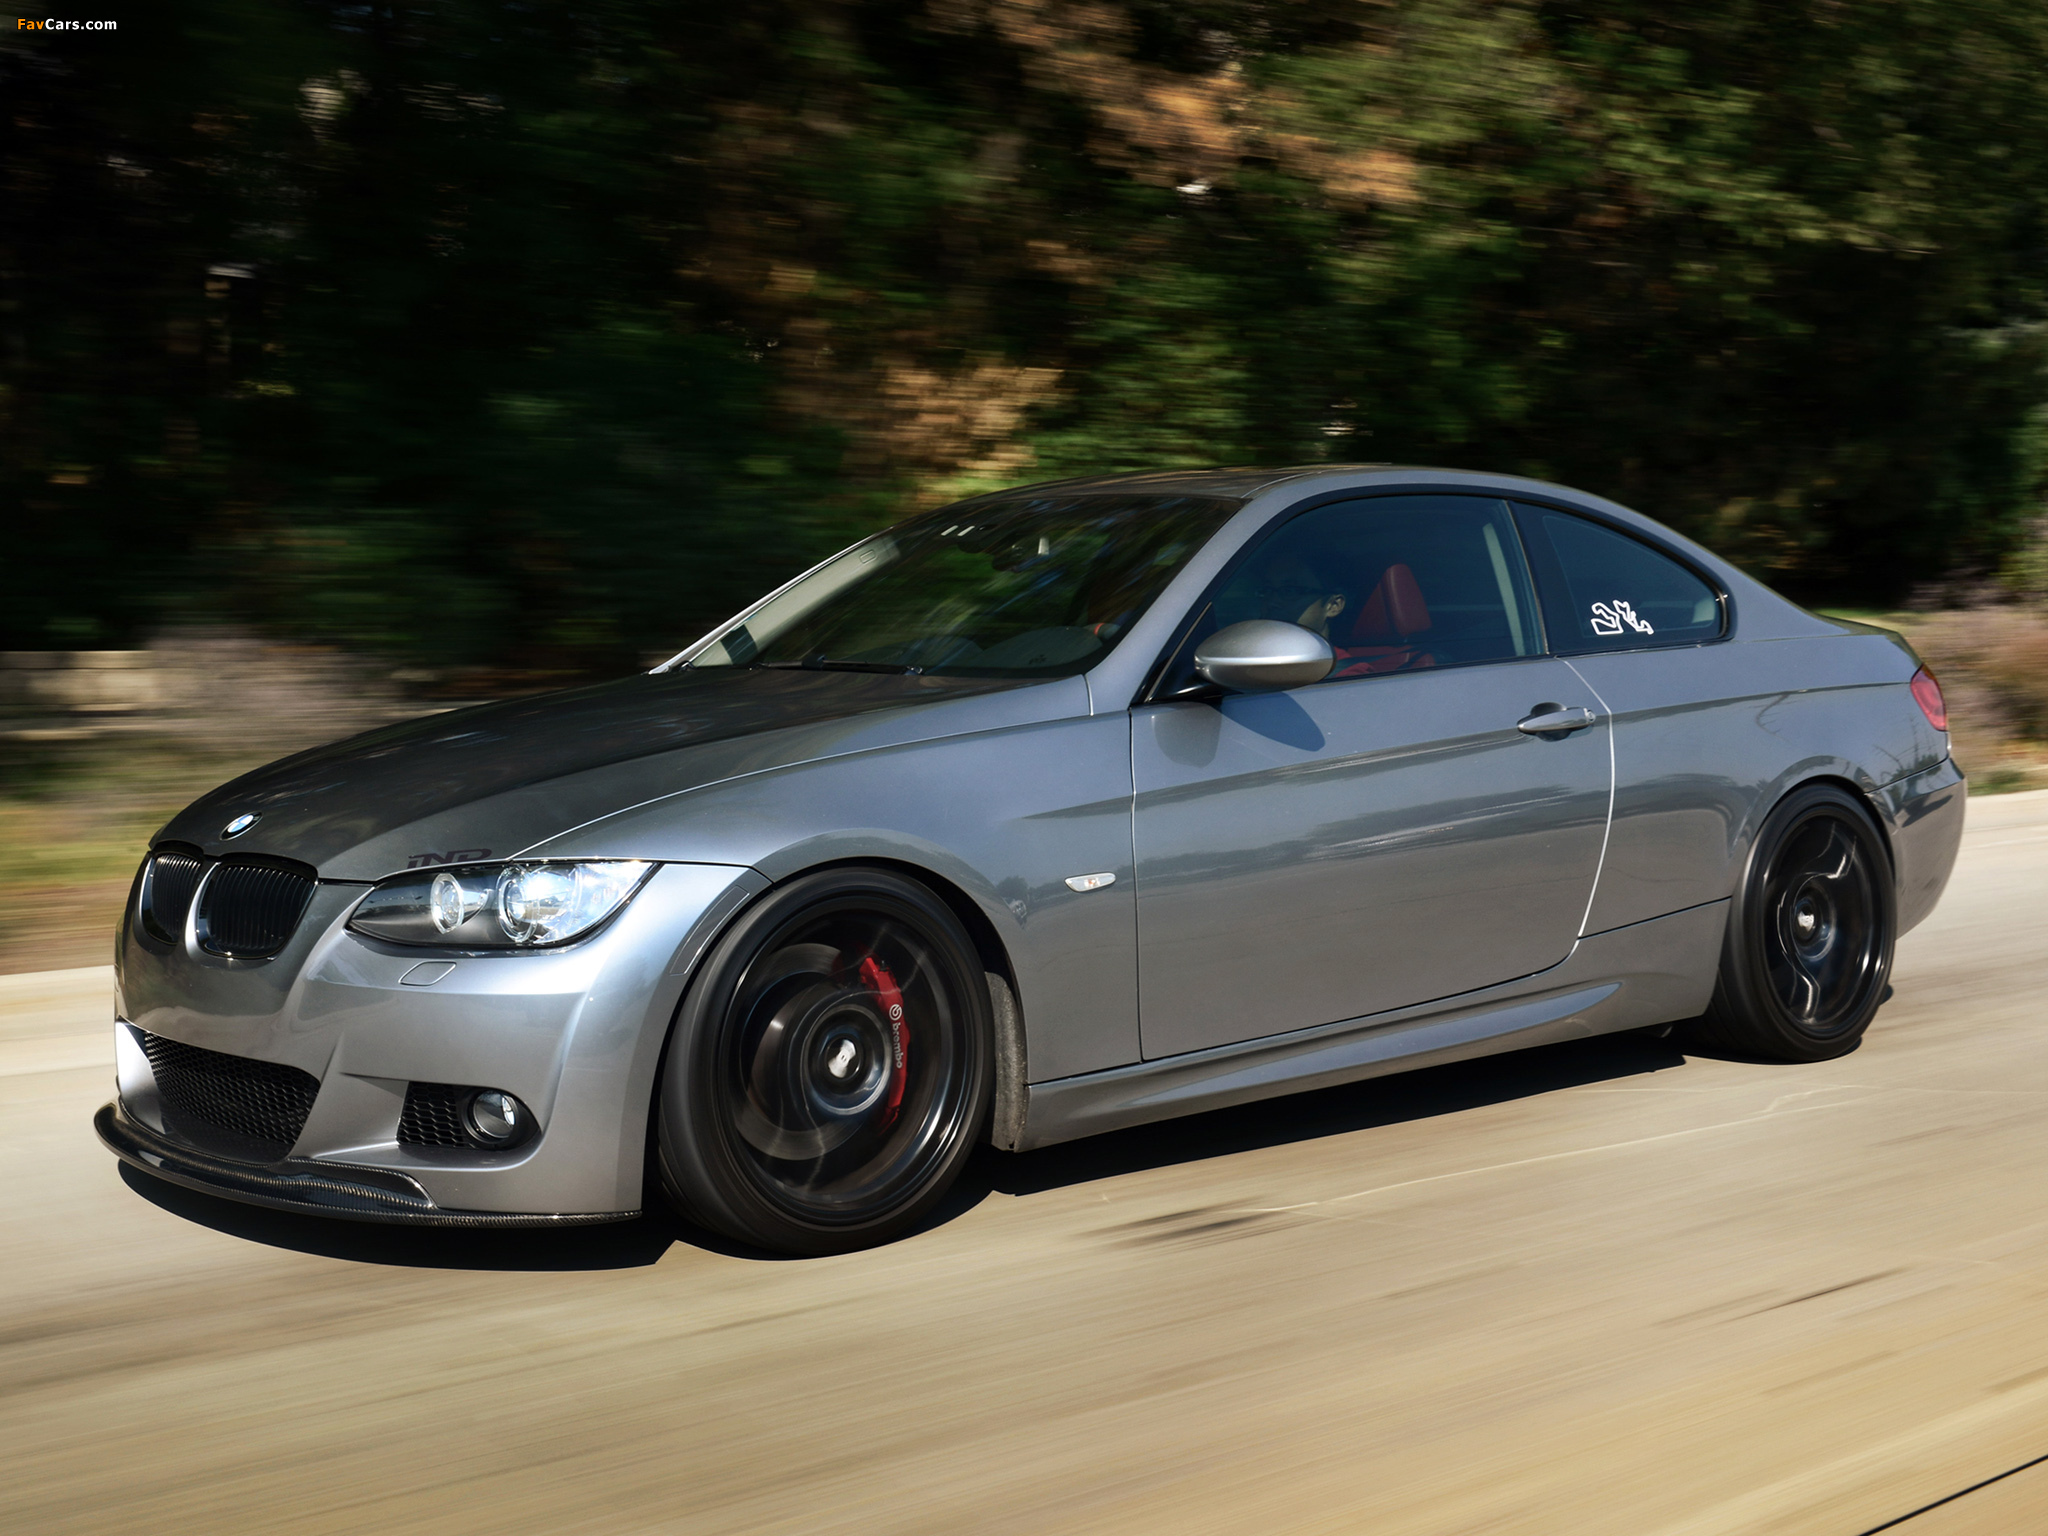 Photos of IND BMW 3 Series Coupe (E92) 2012 (2048x1536)